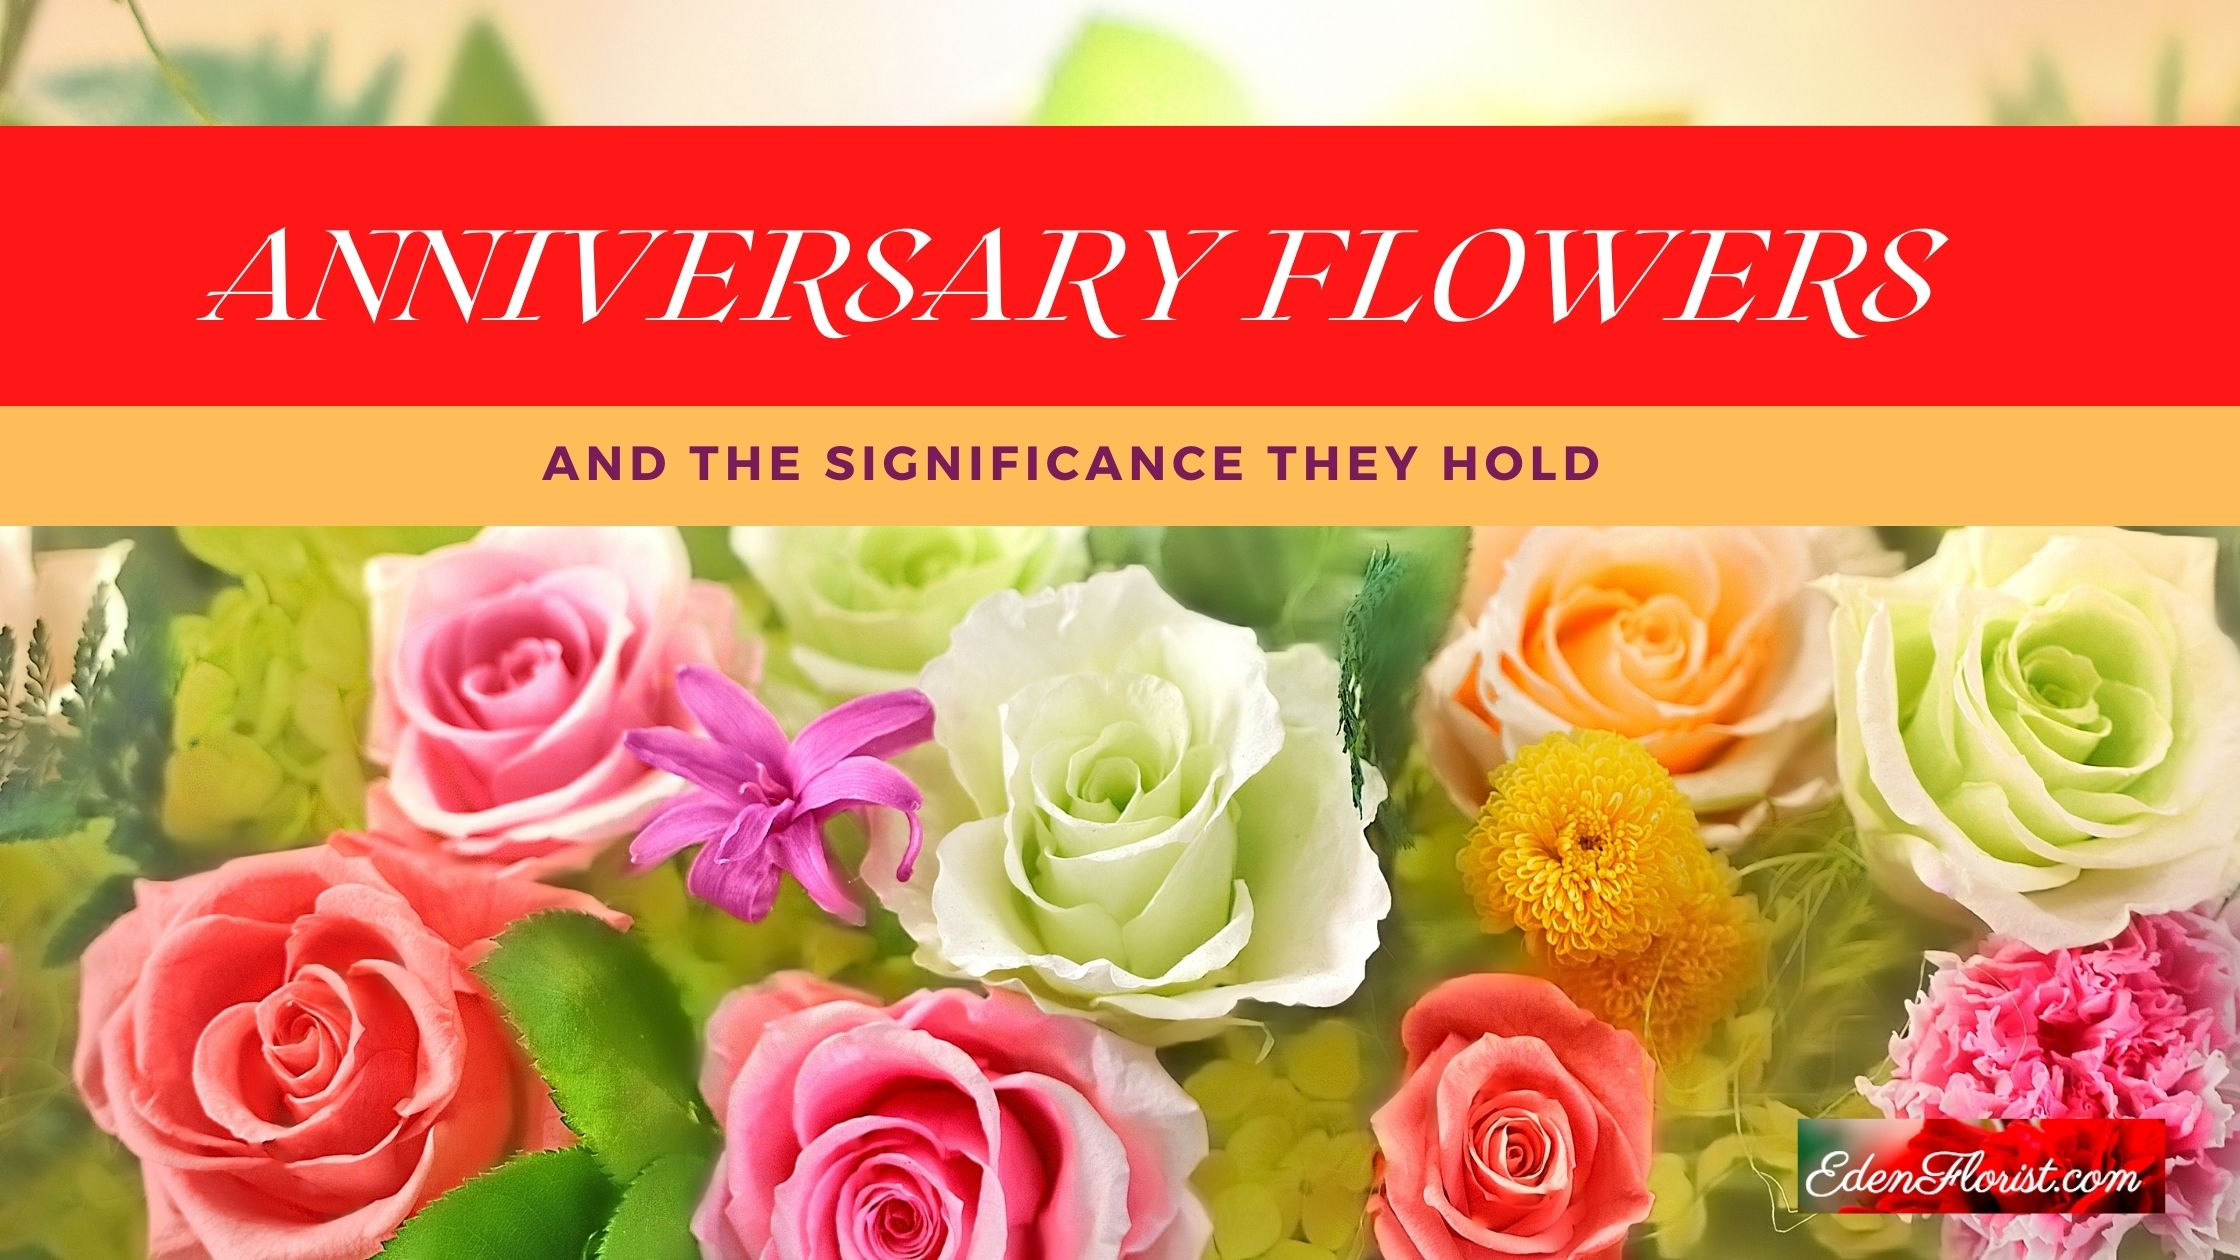 The Significance of Anniversary Flowers